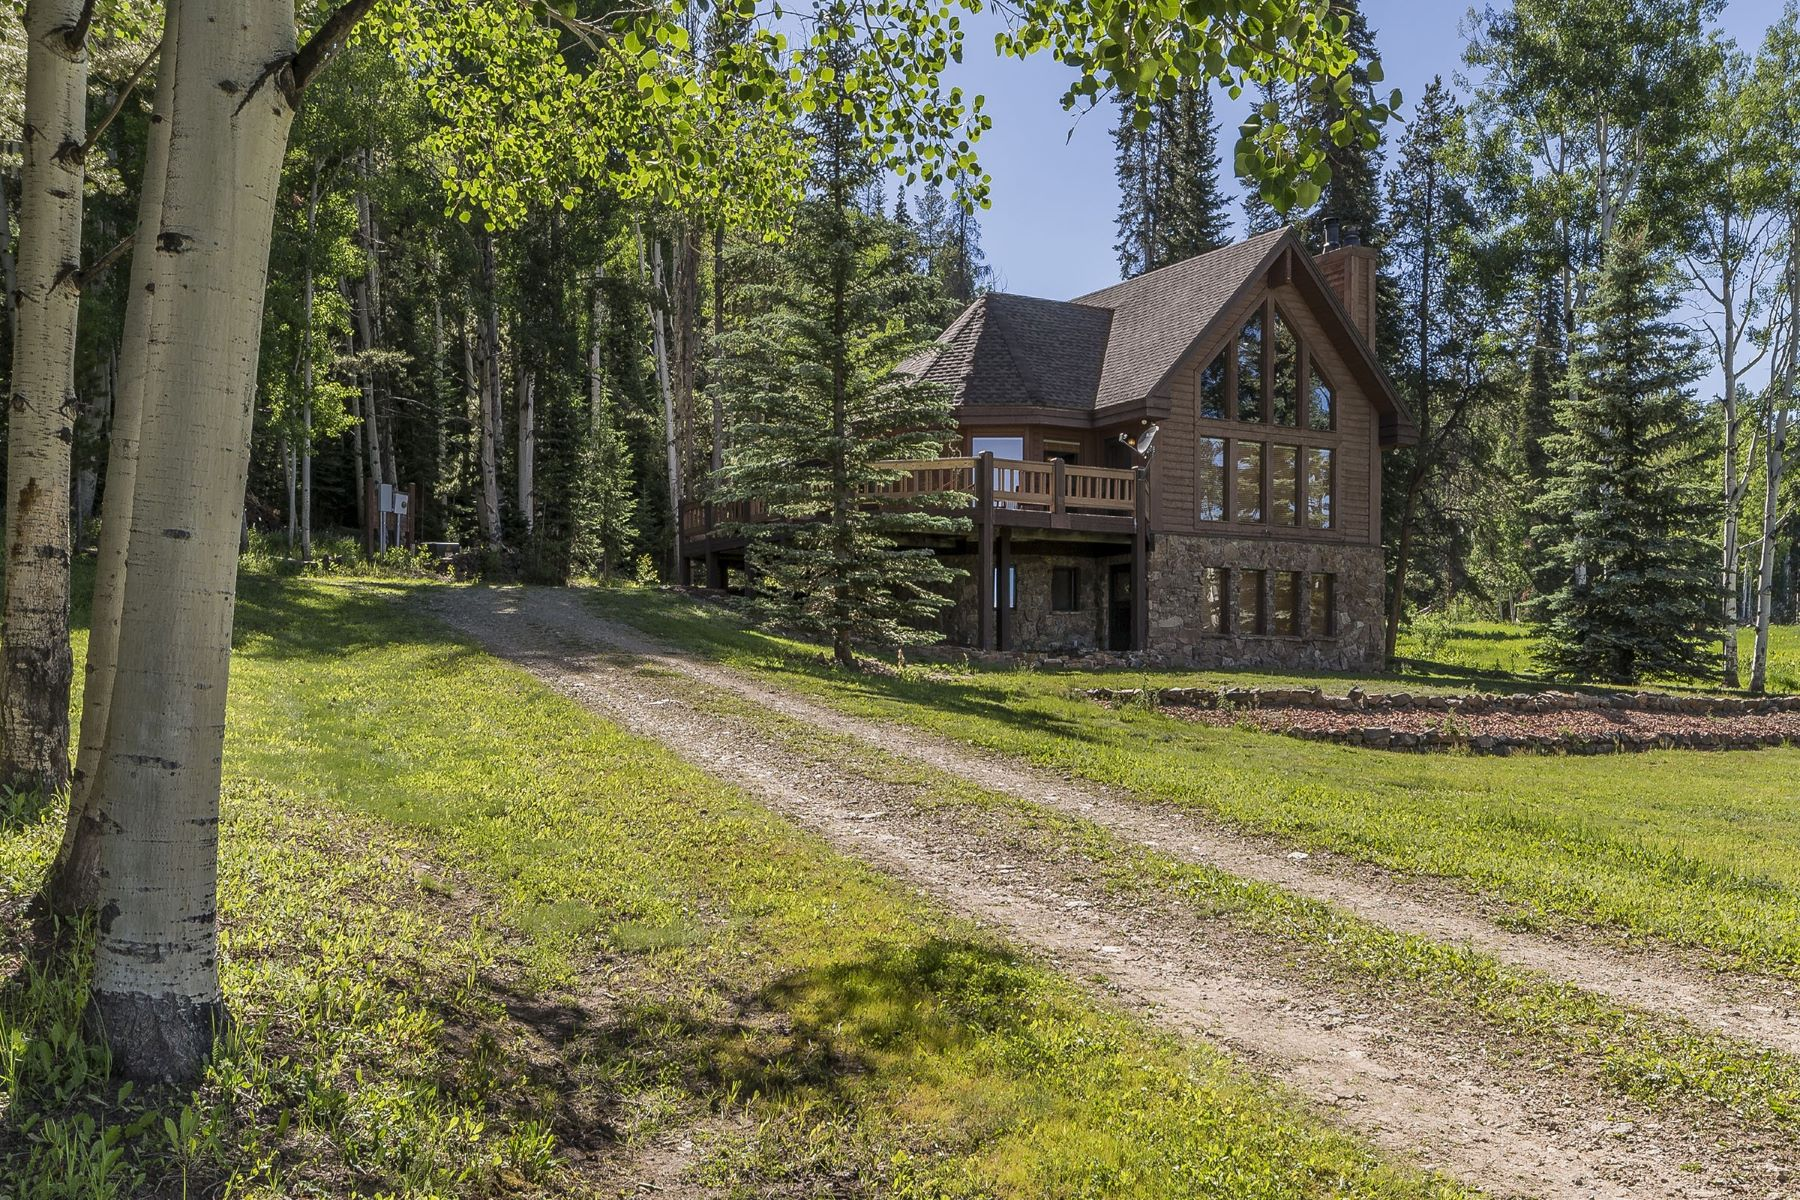 Single Family Home for Sale at Ranches at Steamboat Lake 60800 Floyd Creek Road Clark, Colorado 80428 United States